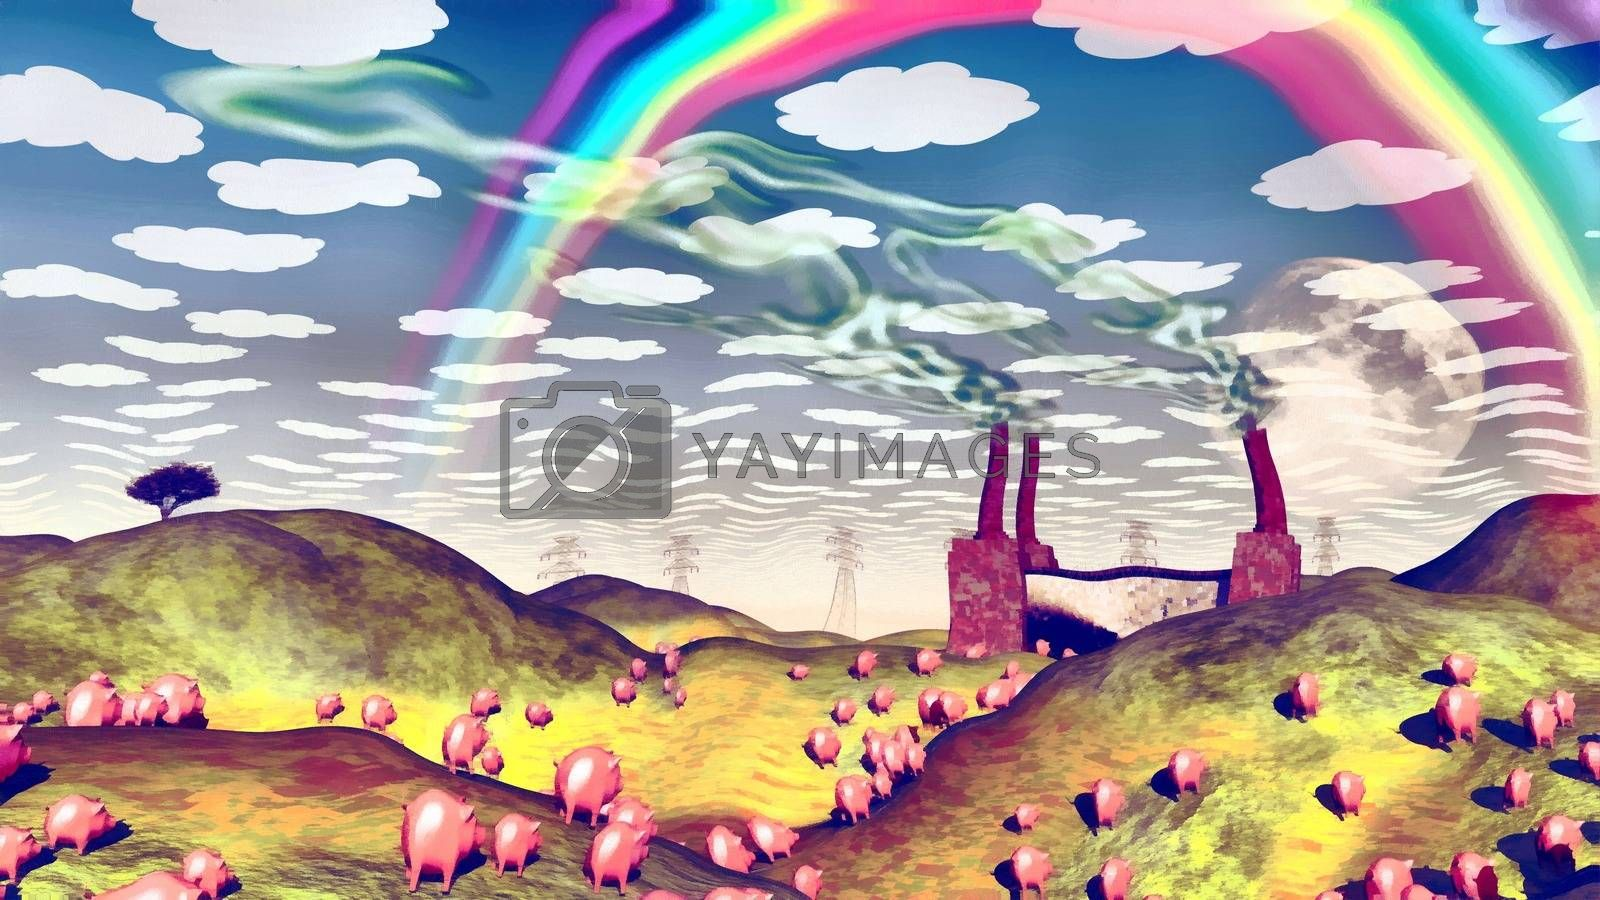 Surreal painting. Pigs in the field. Factory at the horizon. Rainbow in the sky. 3D rendering